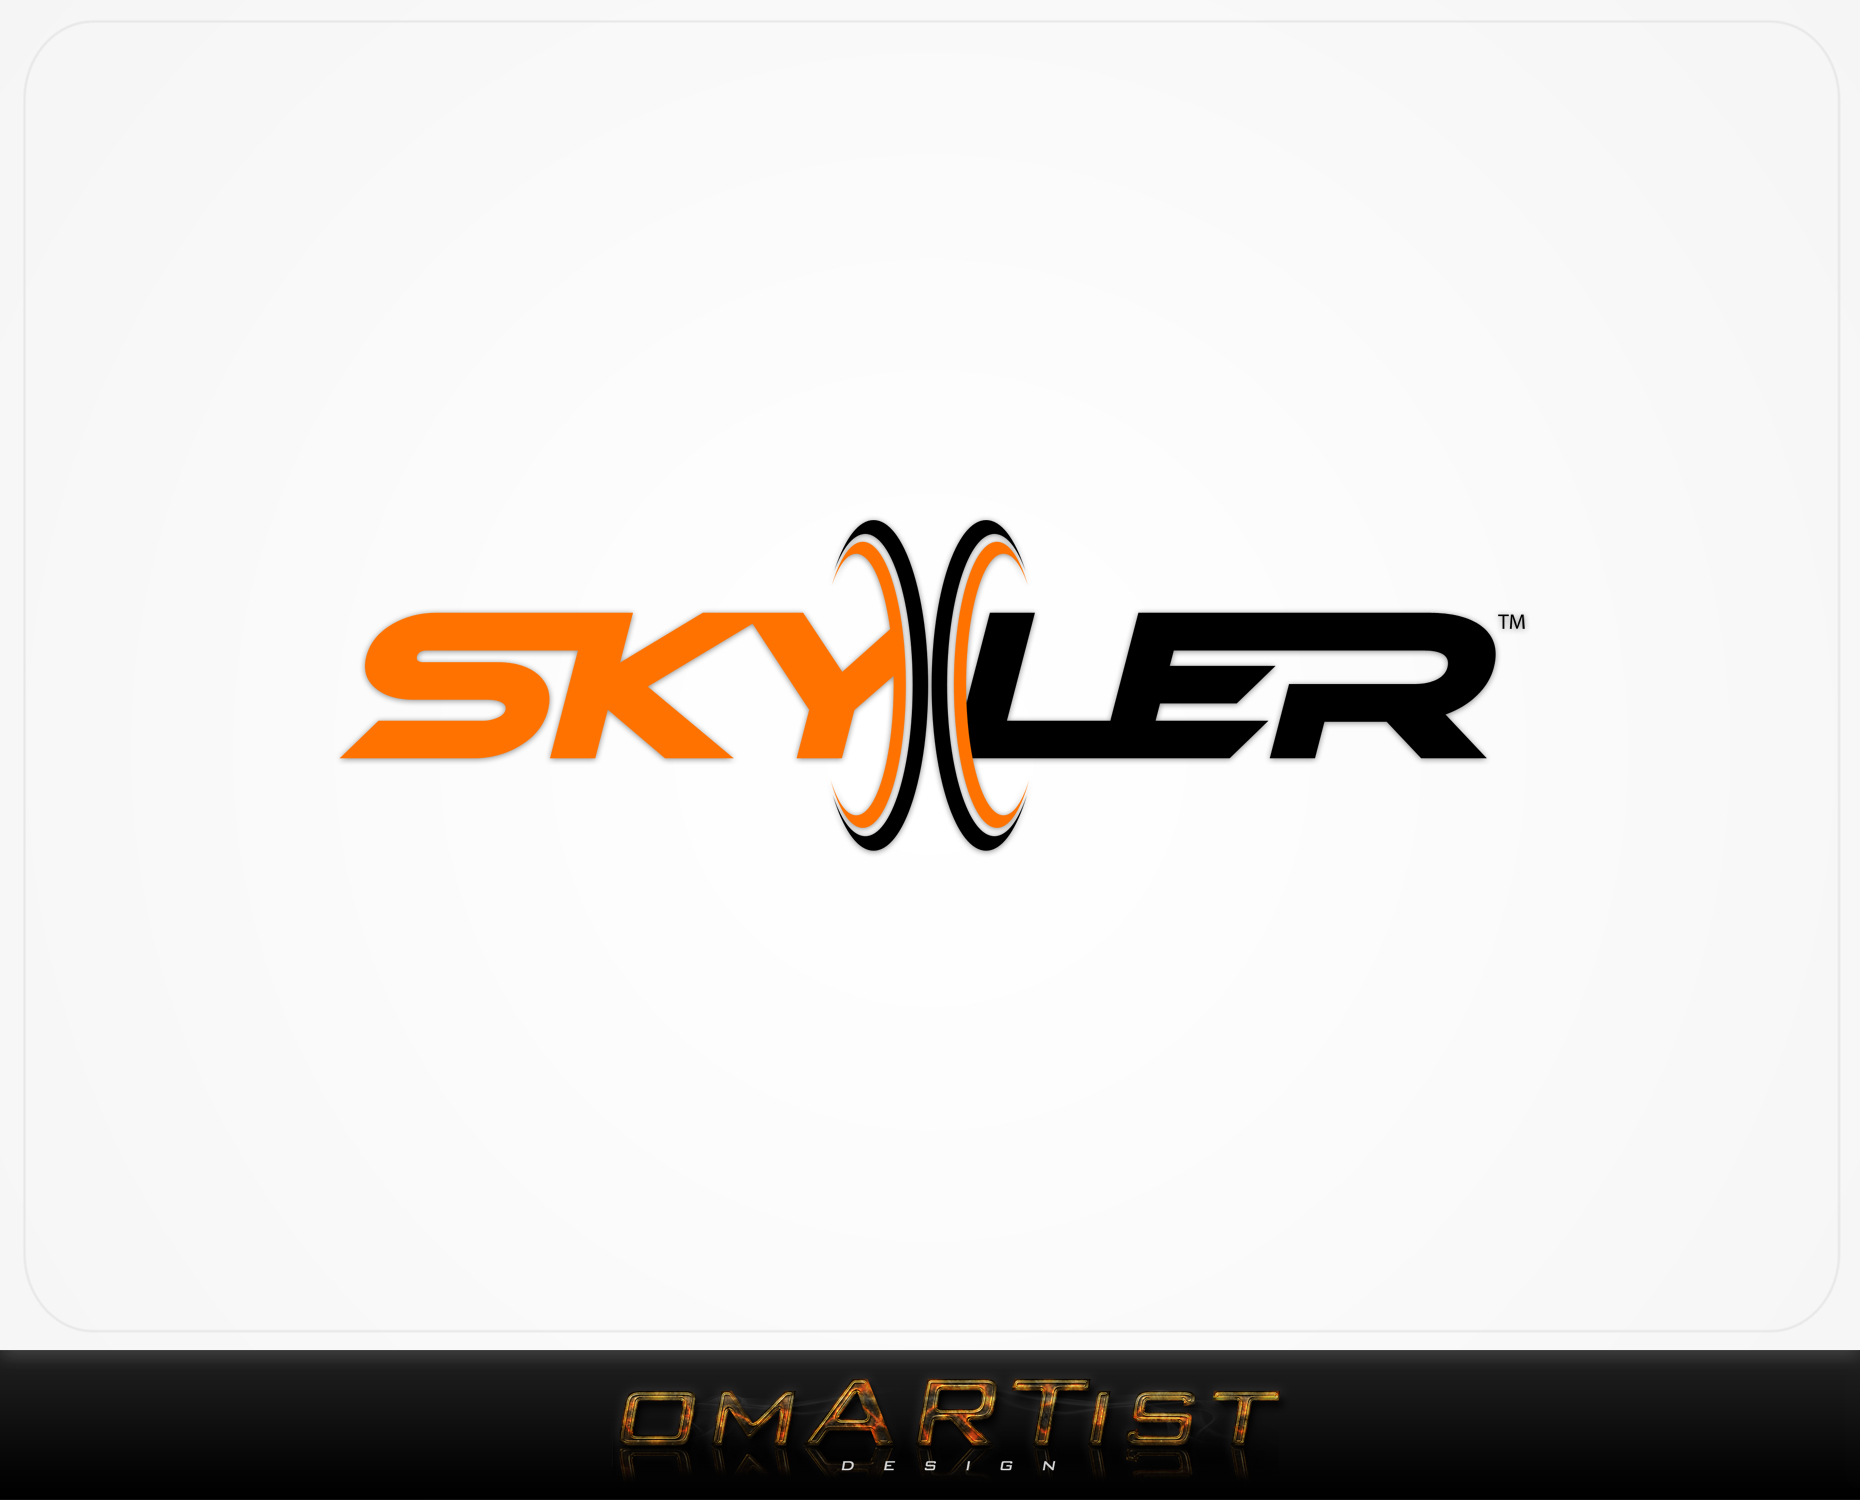 Logo Design by omARTist - Entry No. 276 in the Logo Design Contest Artistic Logo Design for Skyler.Asia.